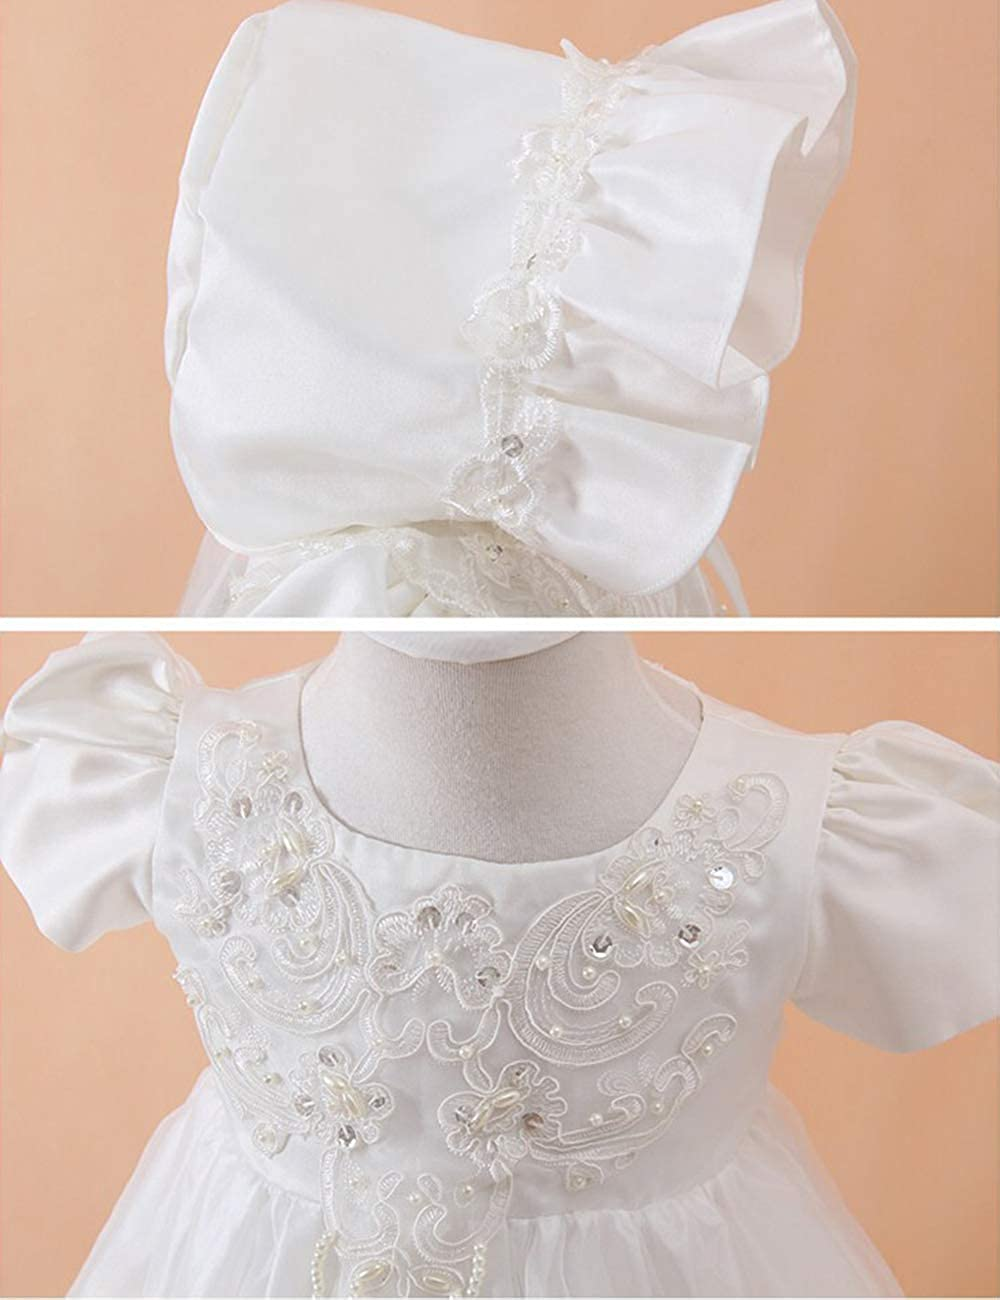 besbomig Baby Girl Christening Outfit Flower Princess Tutu Dress with Bonnet /& Cape